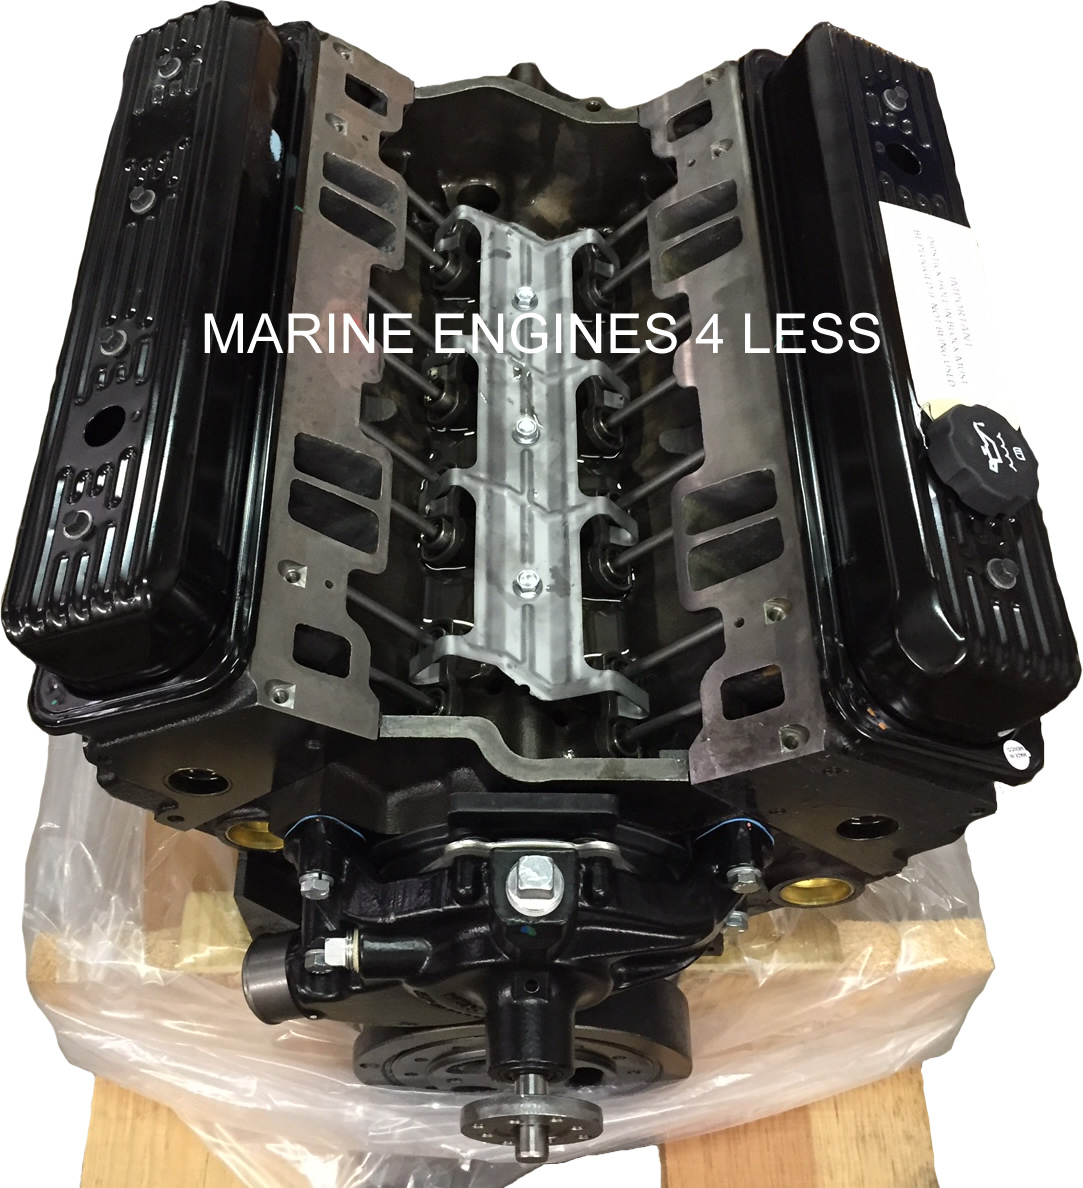 Remanufactured 6 2L 383